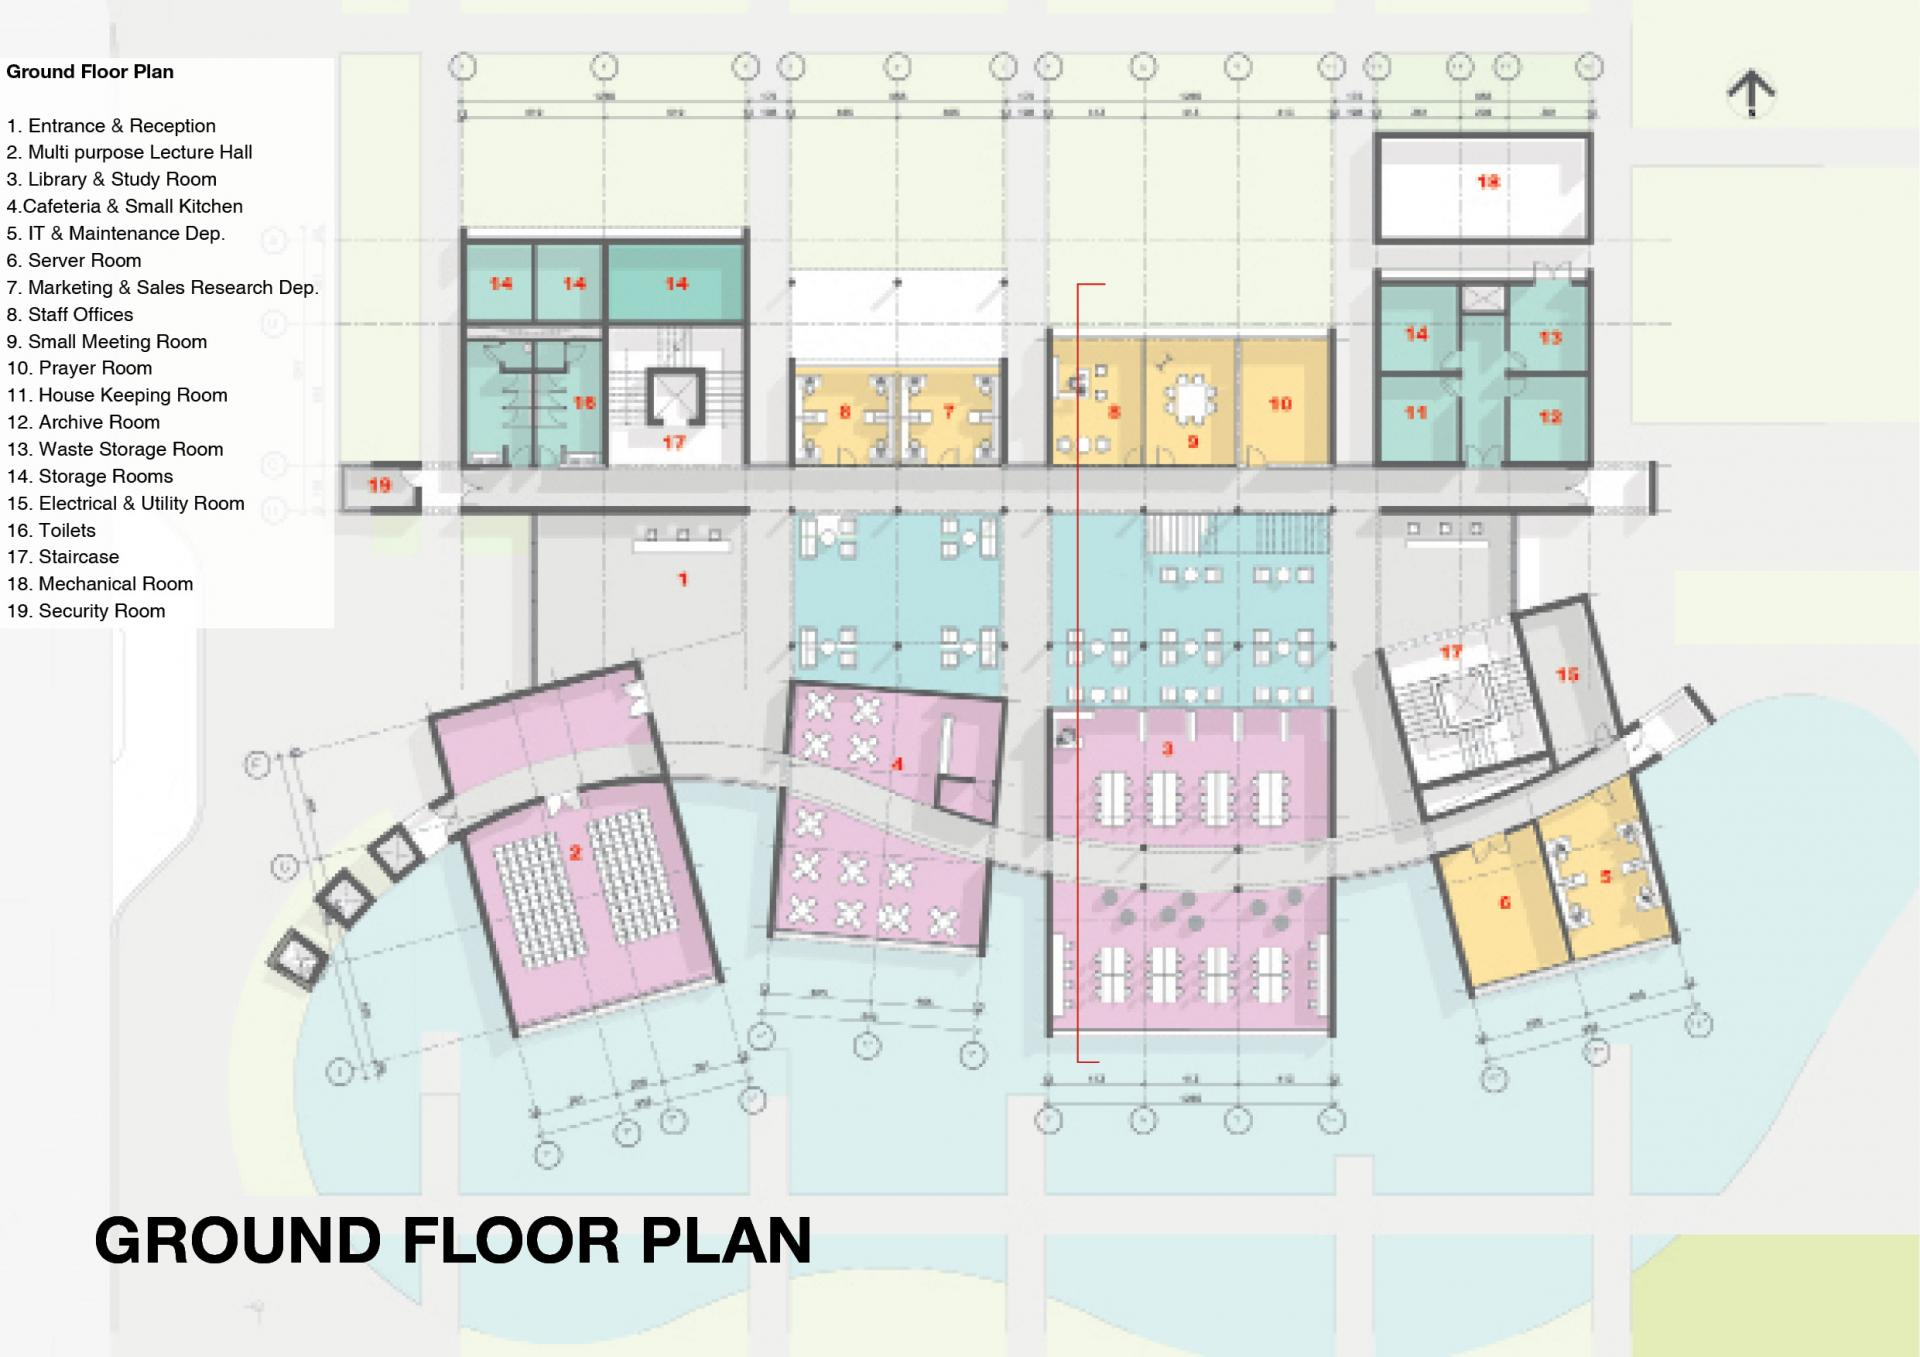 Arab Potash Company - RD&I Center Ground Floor Plan